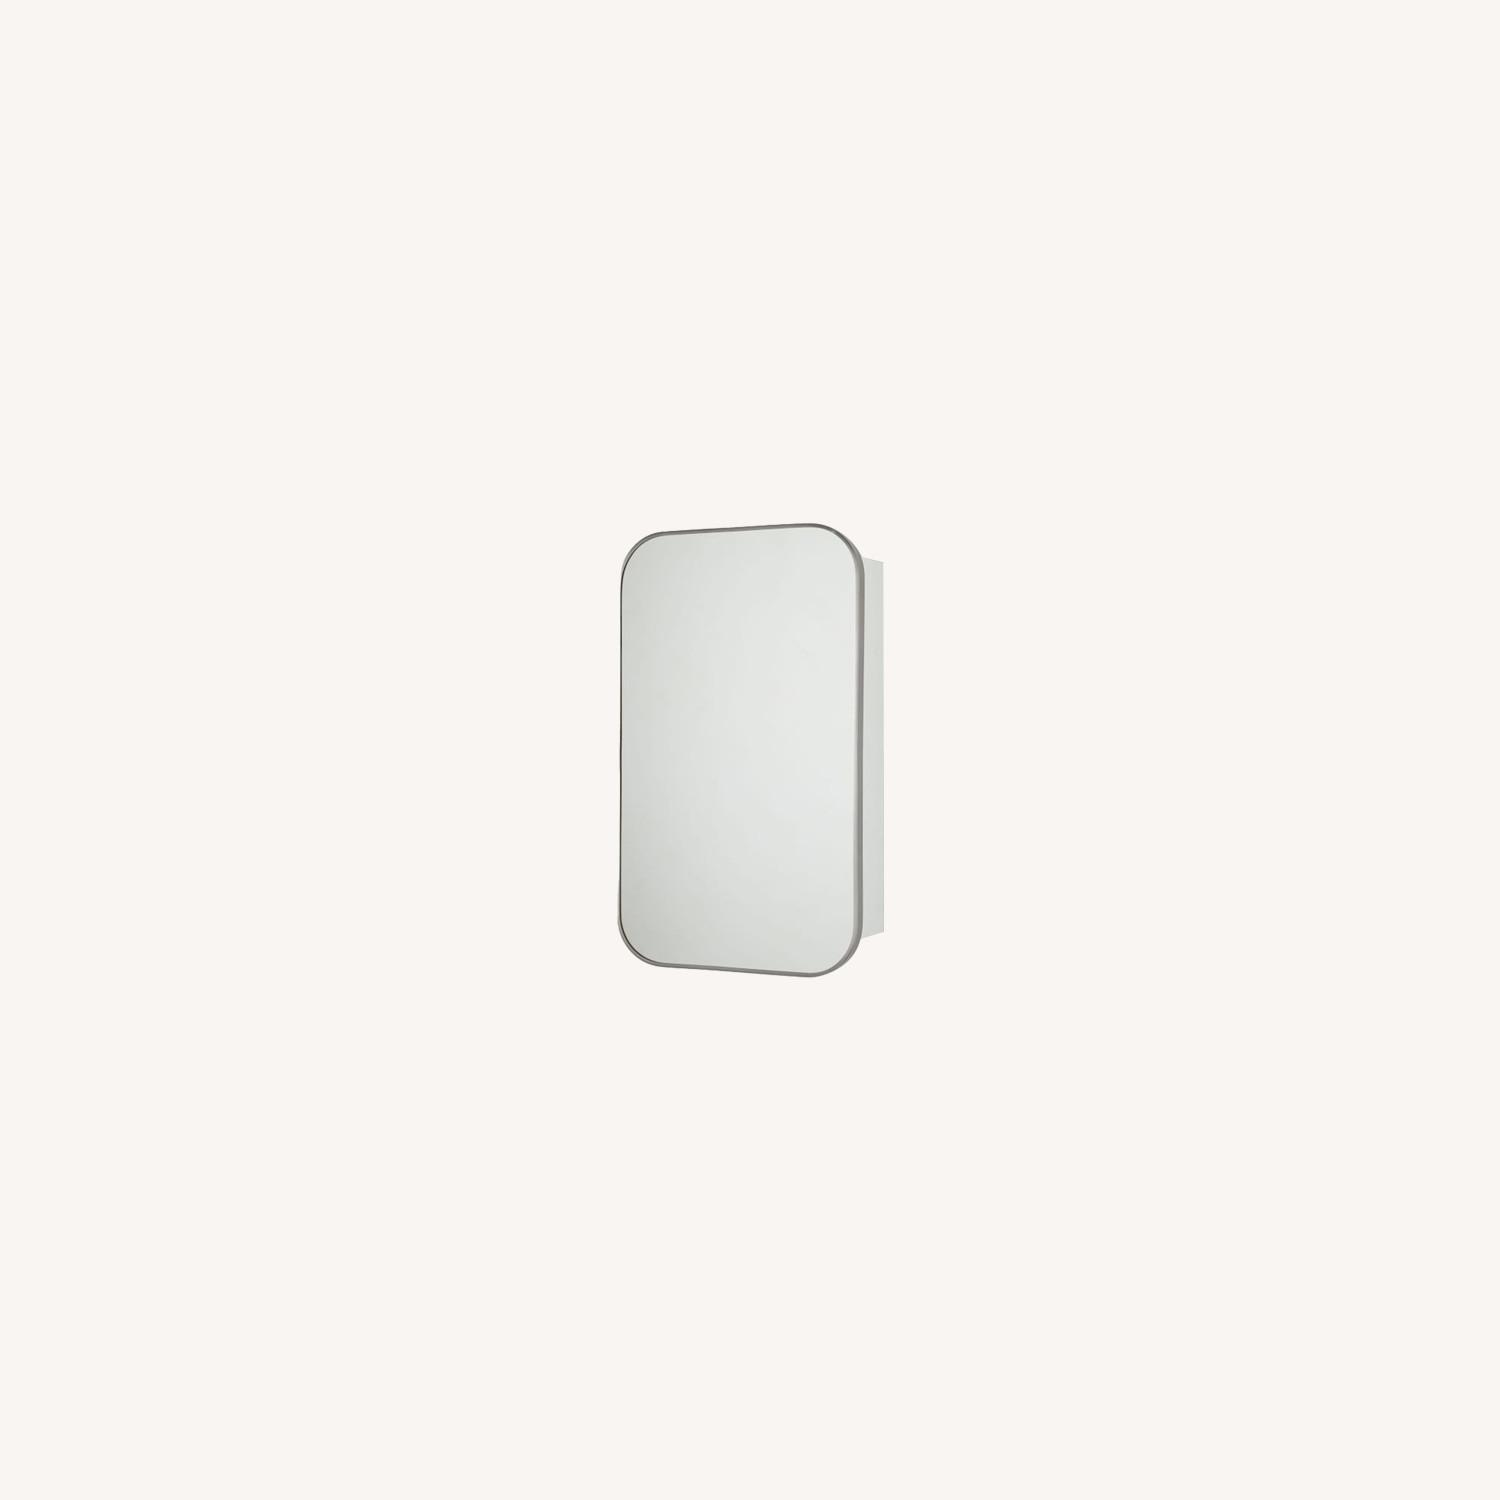 West Elm Seamless Medicine Cabinets, Chrome - image-0